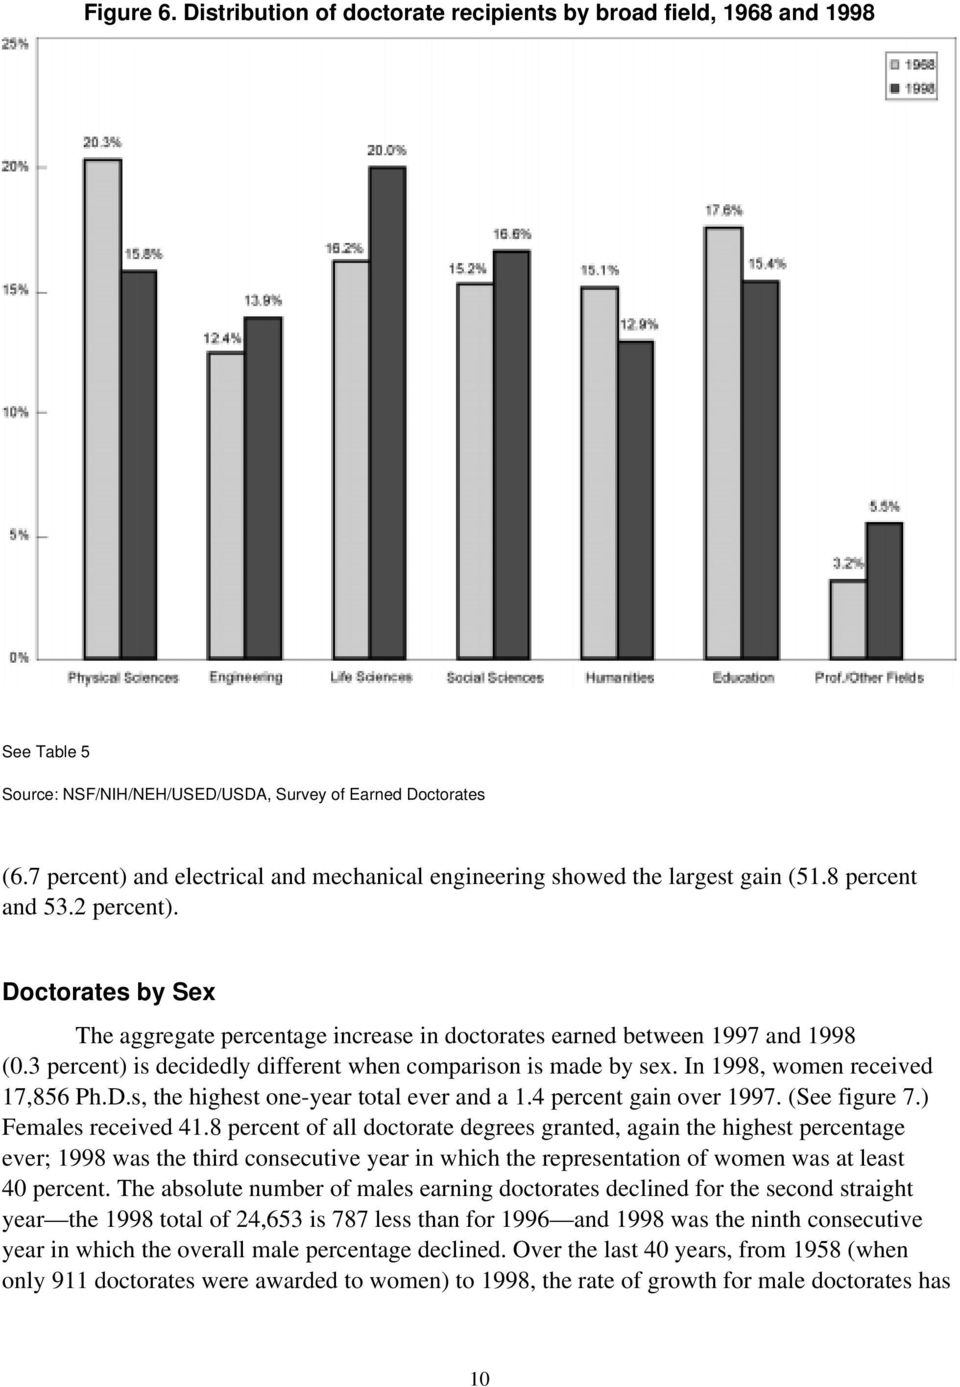 Doctorates by Sex The aggregate percentage increase in doctorates earned between 1997 and 1998 (0.3 percent) is decidedly different when comparison is made by sex. In 1998, women received 17,856 Ph.D.s, the highest one-year total ever and a 1.